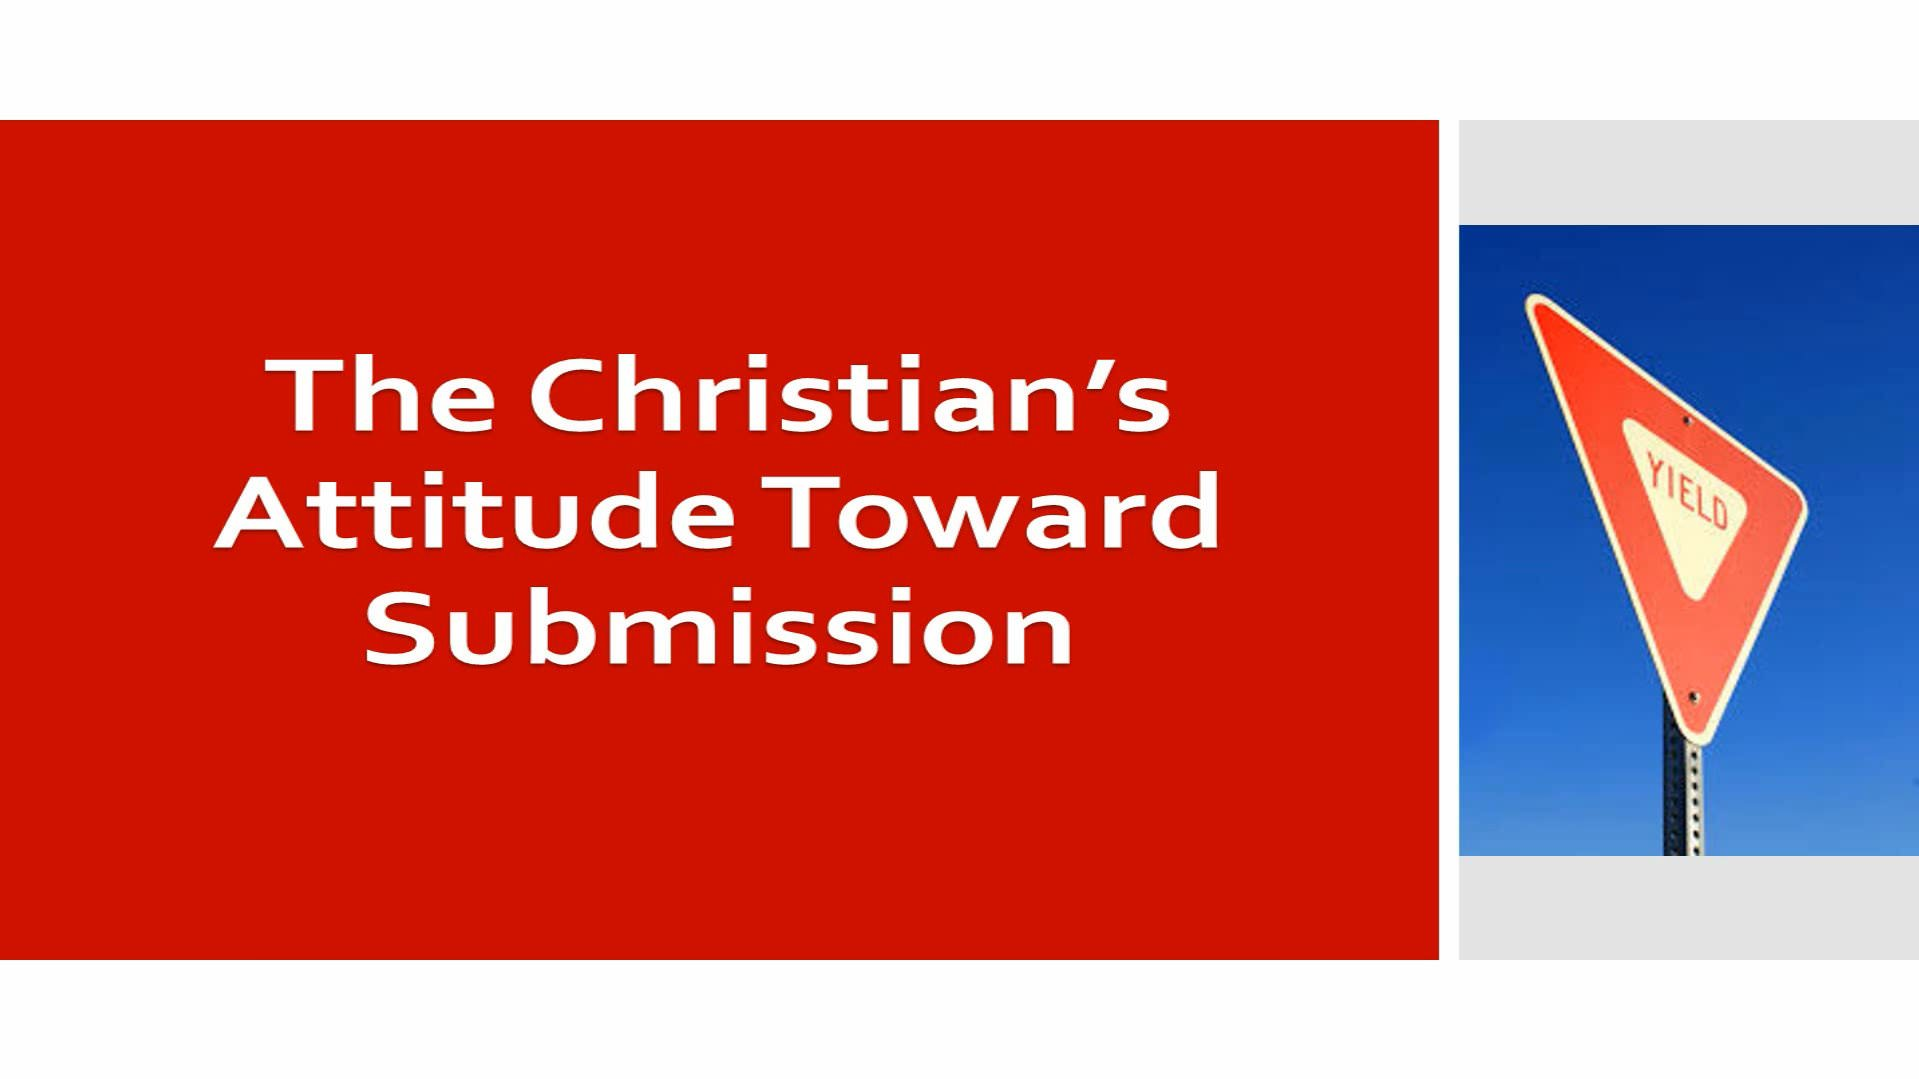 The Christian's Attitude Toward Submission